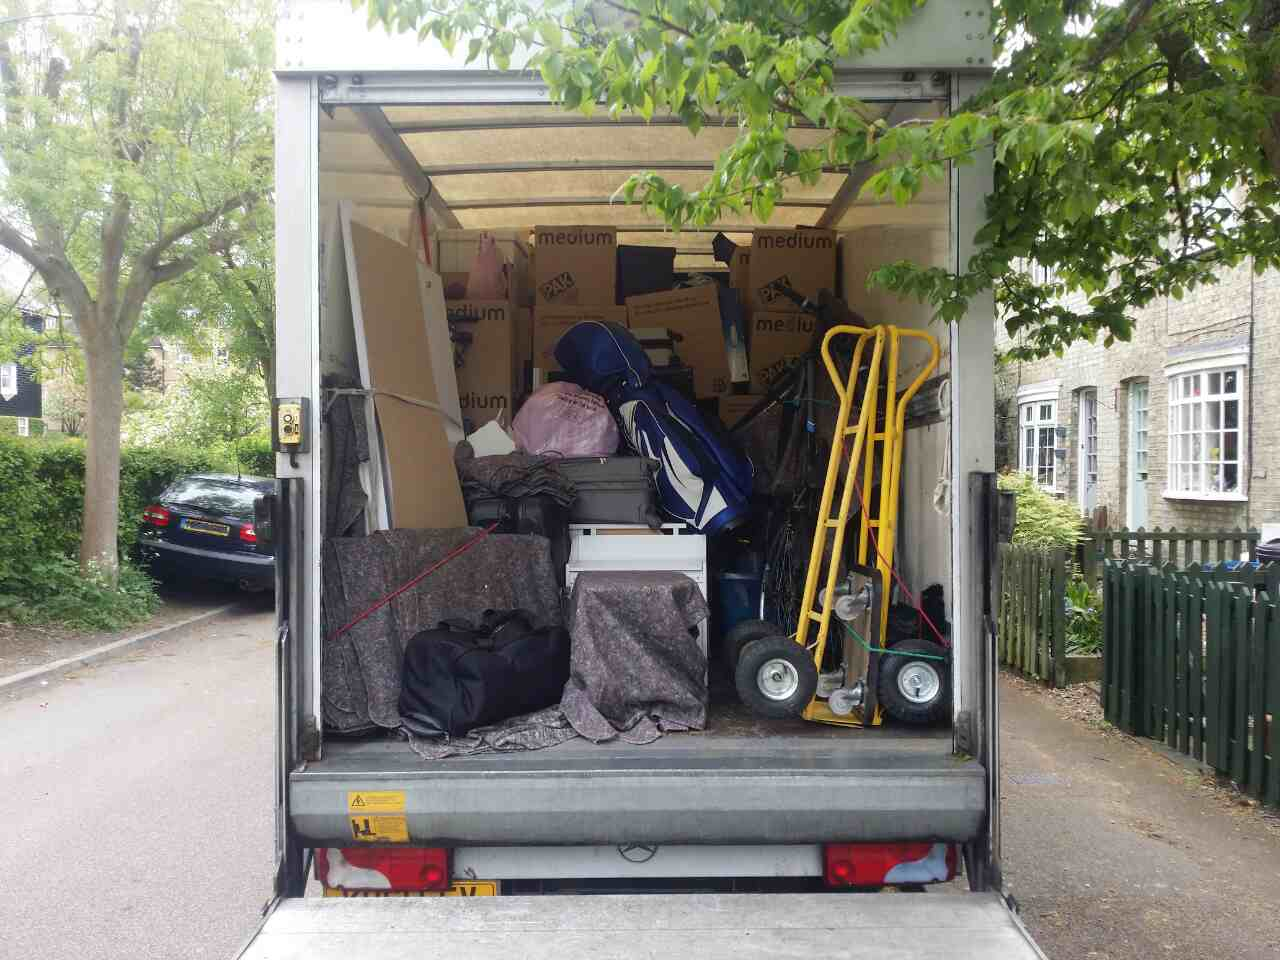 Camden Town removal van costs